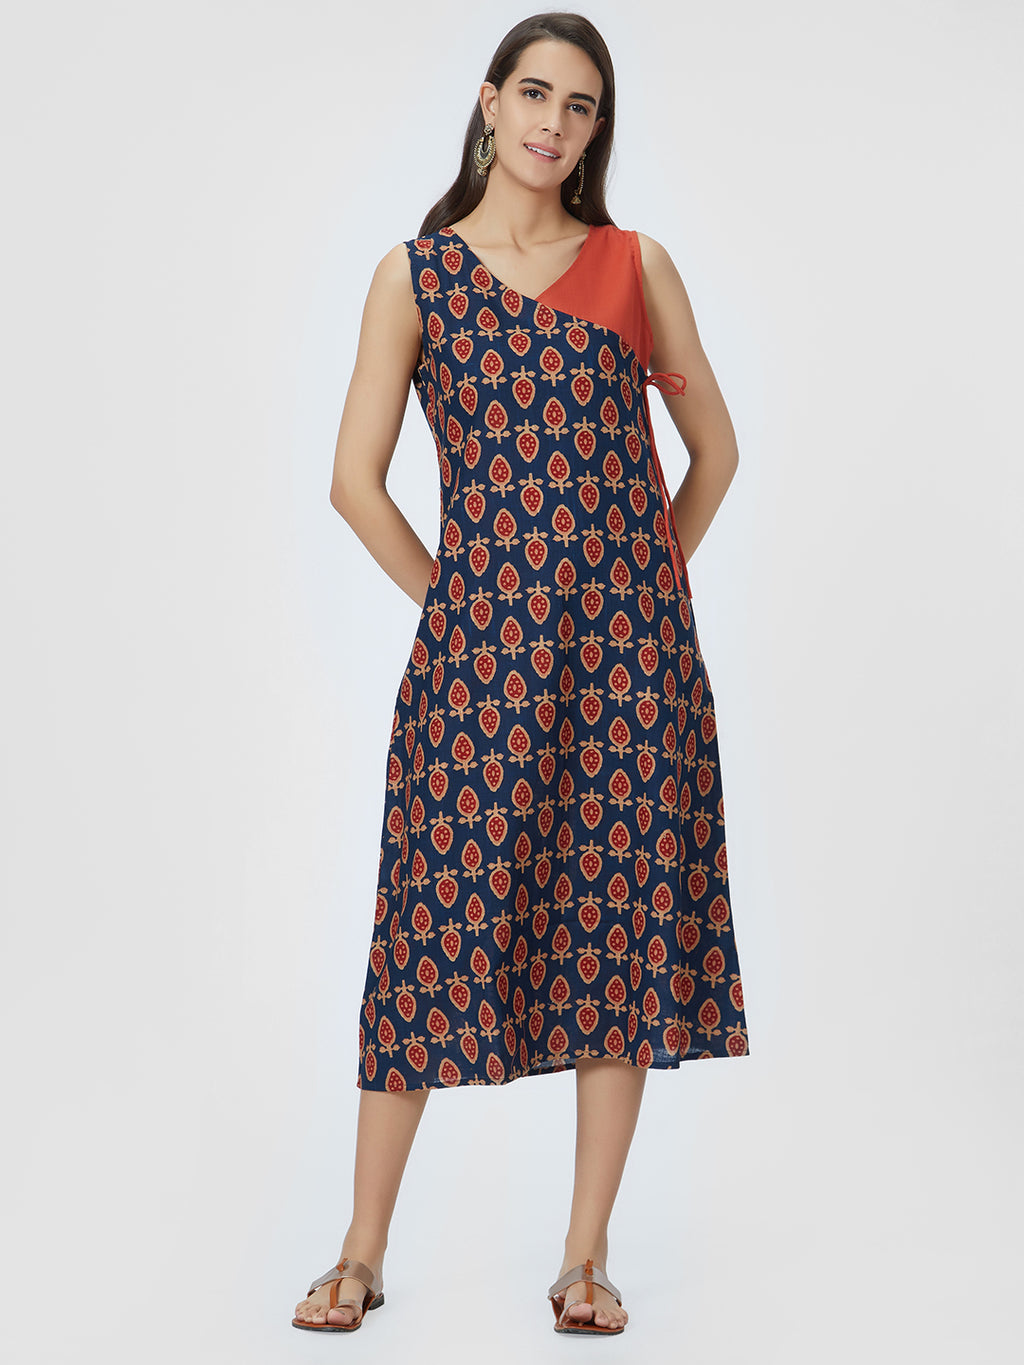 Blue Printed & Rust Red A-Line Dress